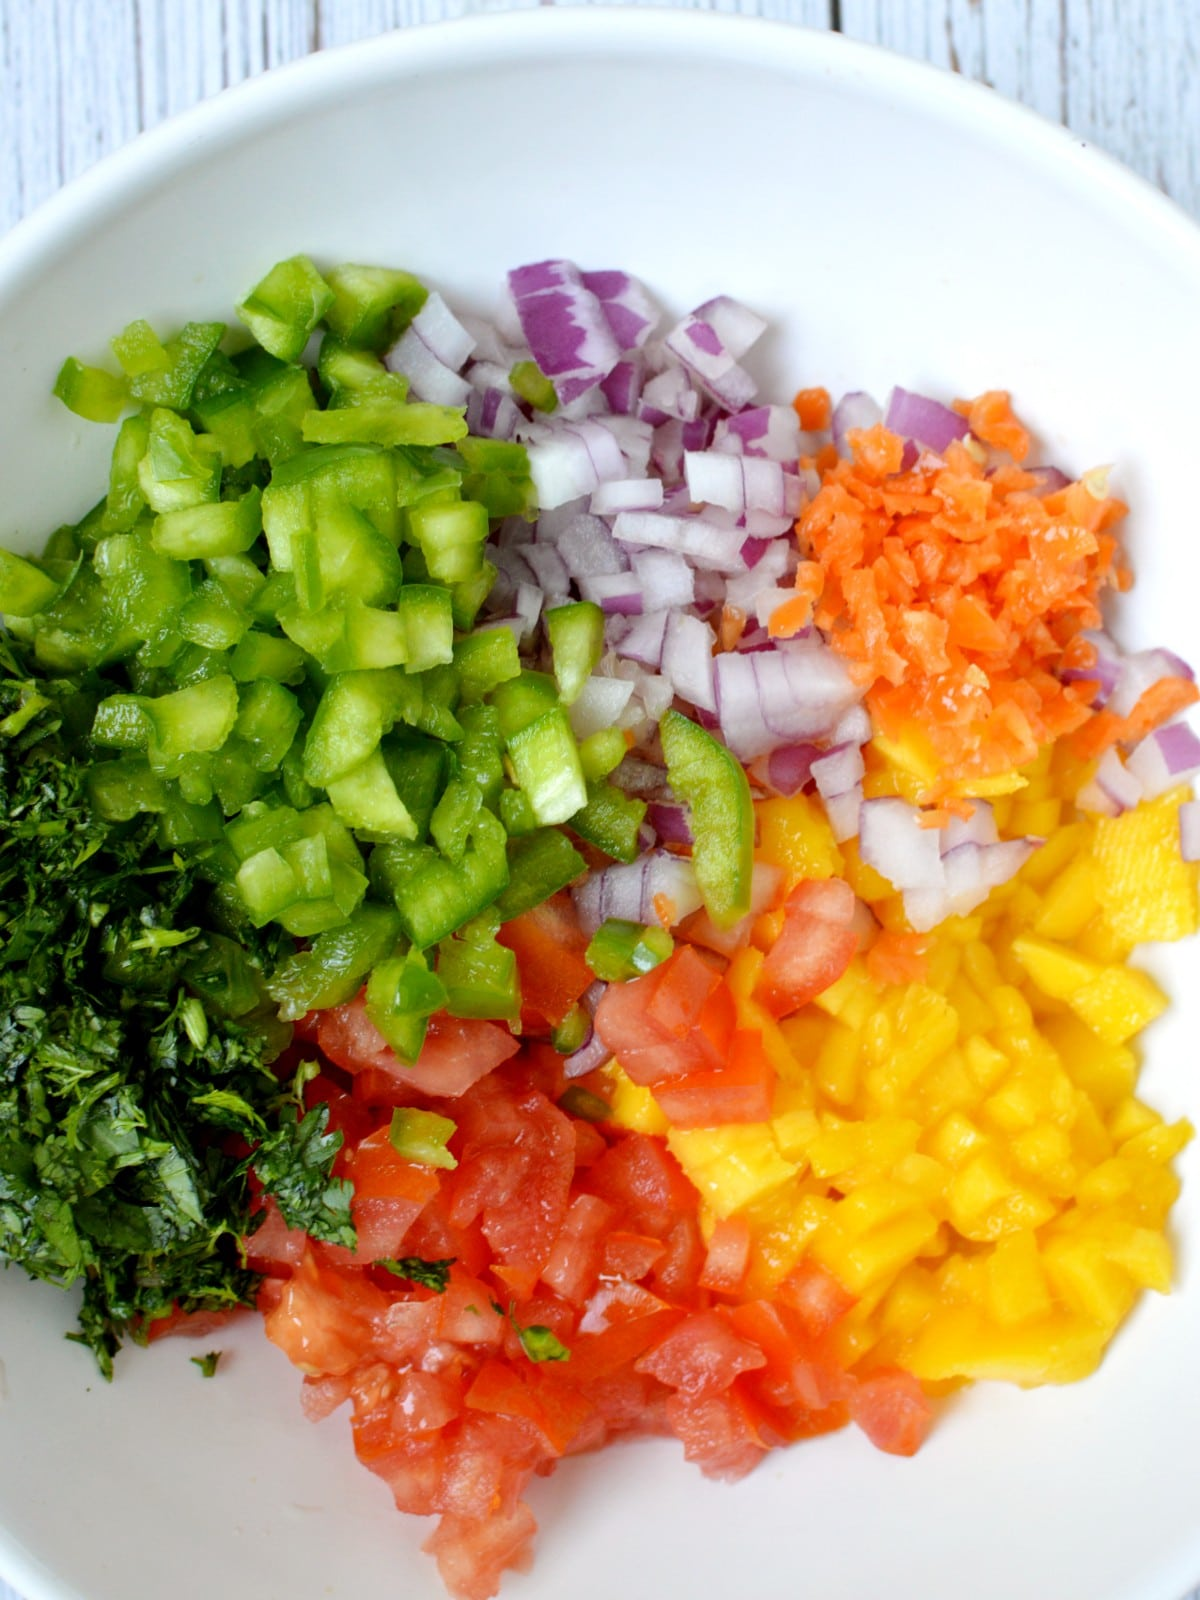 diced up vegetables and fruit